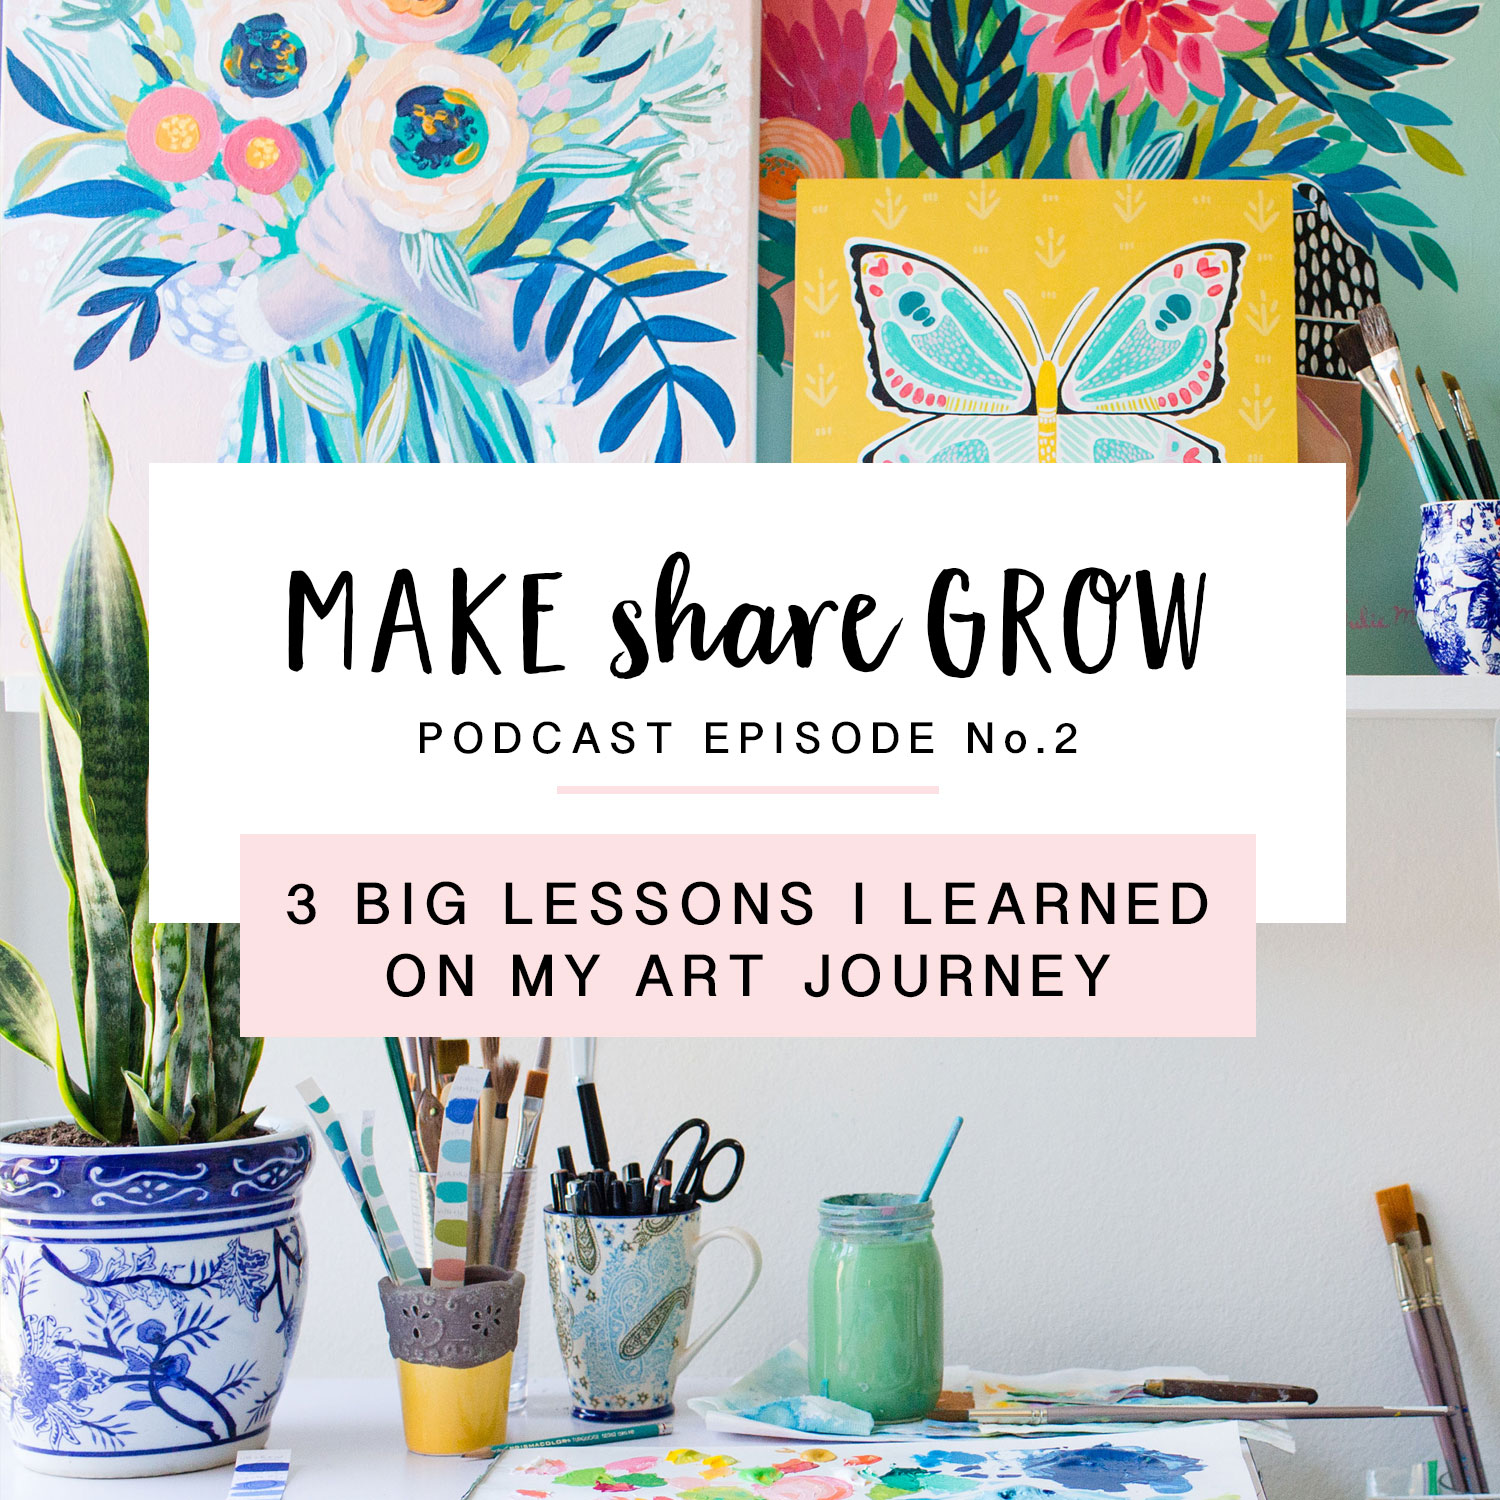 Make-Share-Grow-Podcast-Episode-2-art.jpg